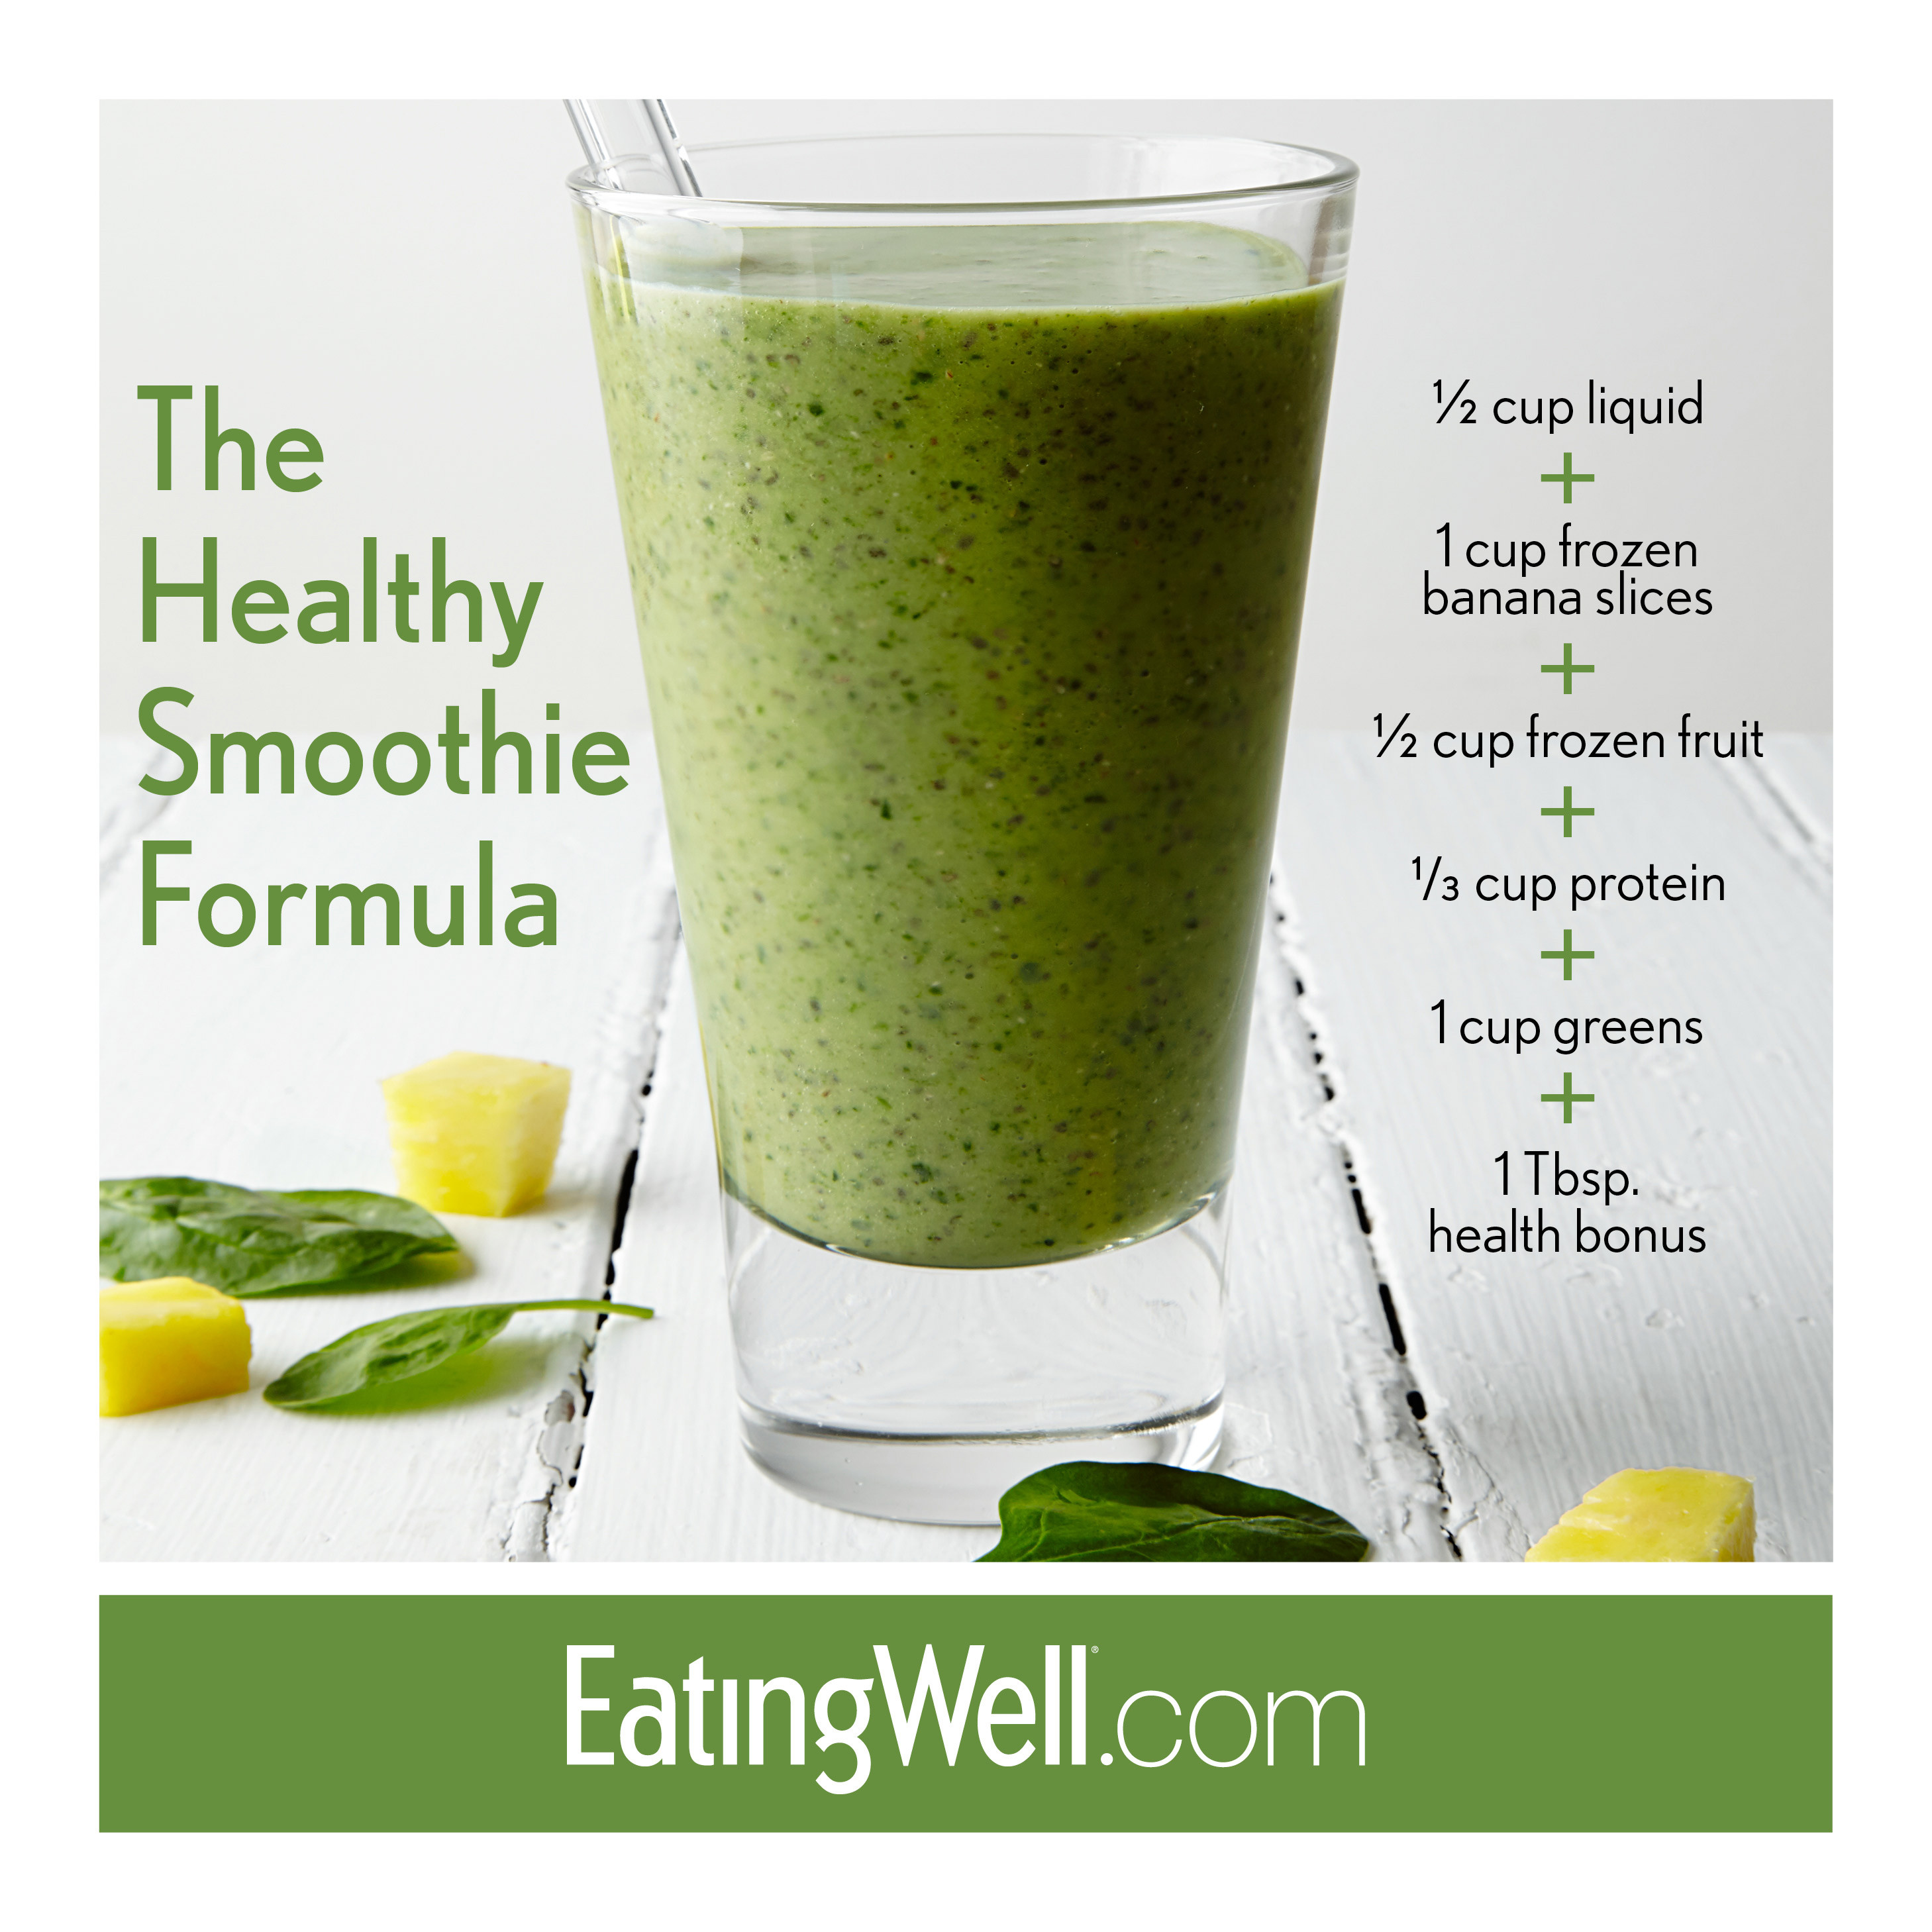 Easy And Healthy Smoothie Recipes  The Ultimate Green Smoothie Recipe EatingWell